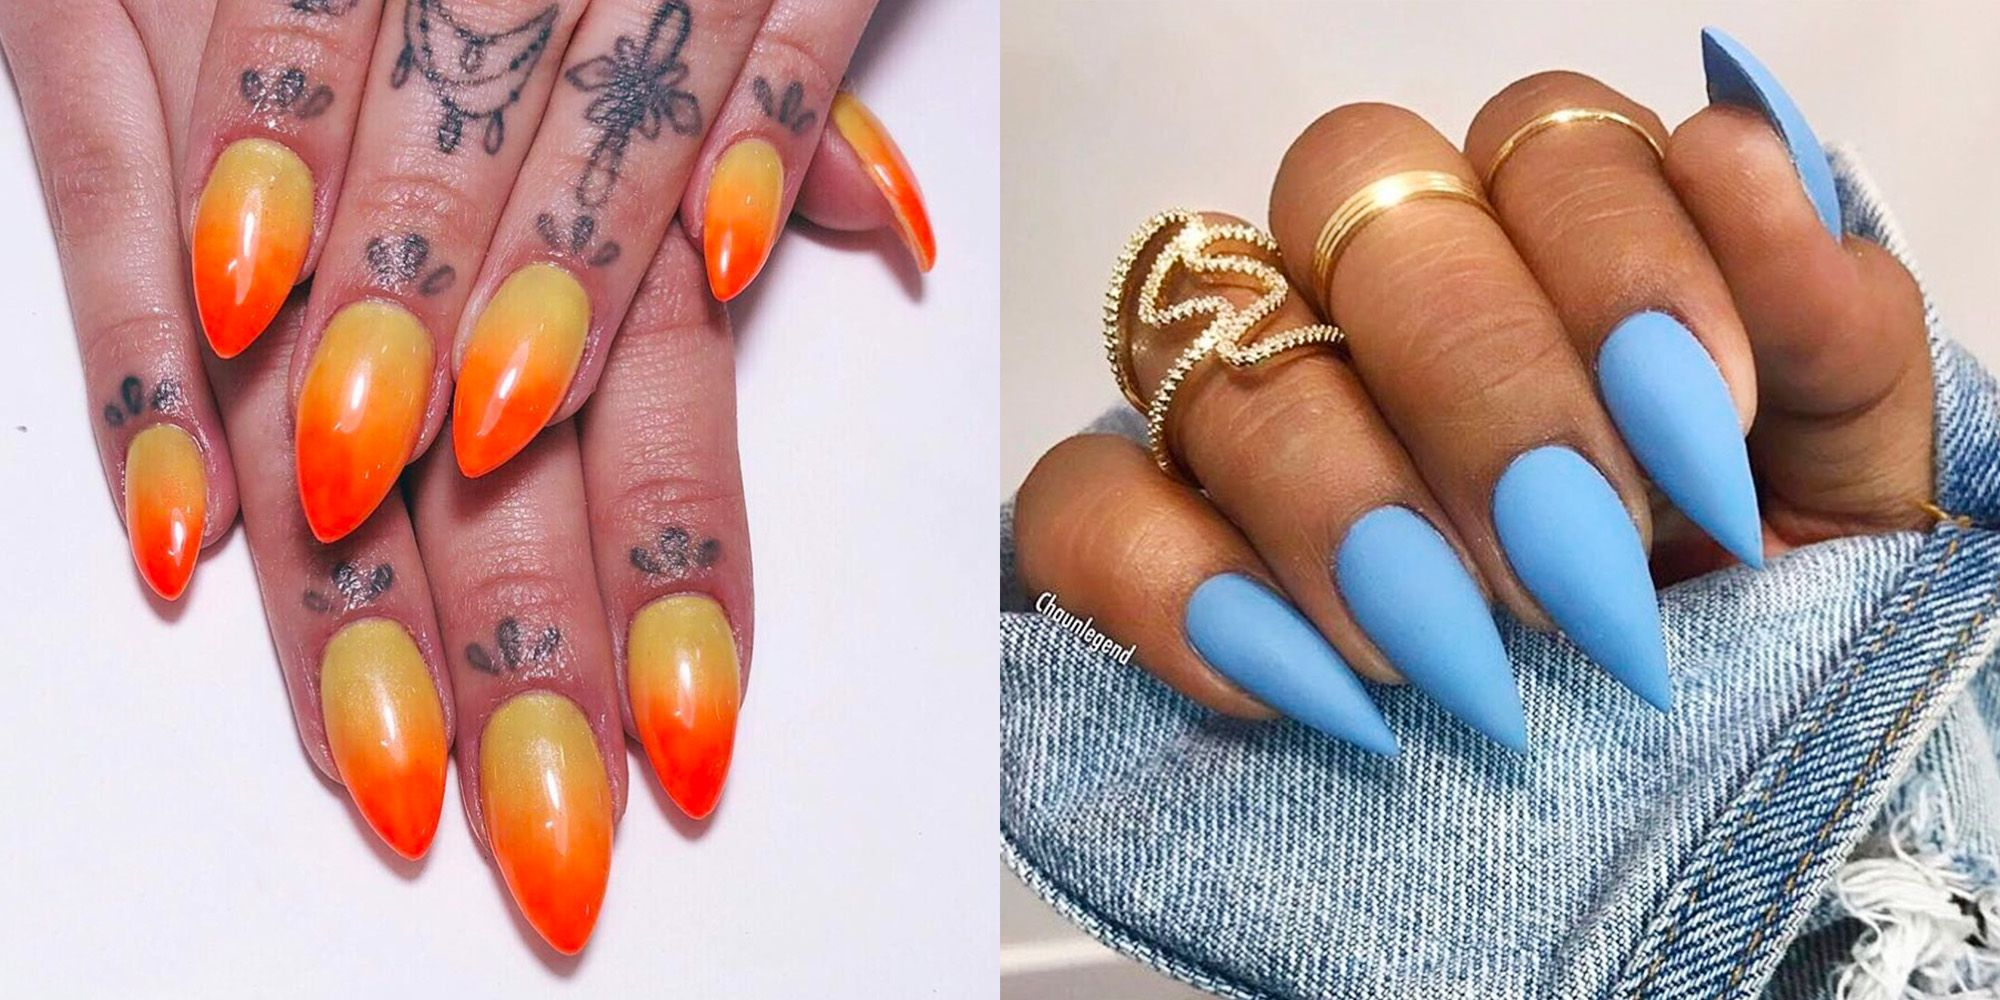 10 Best Stiletto Nails Designs 2018 Pointy Stiletto Acrylic Nail Ideas